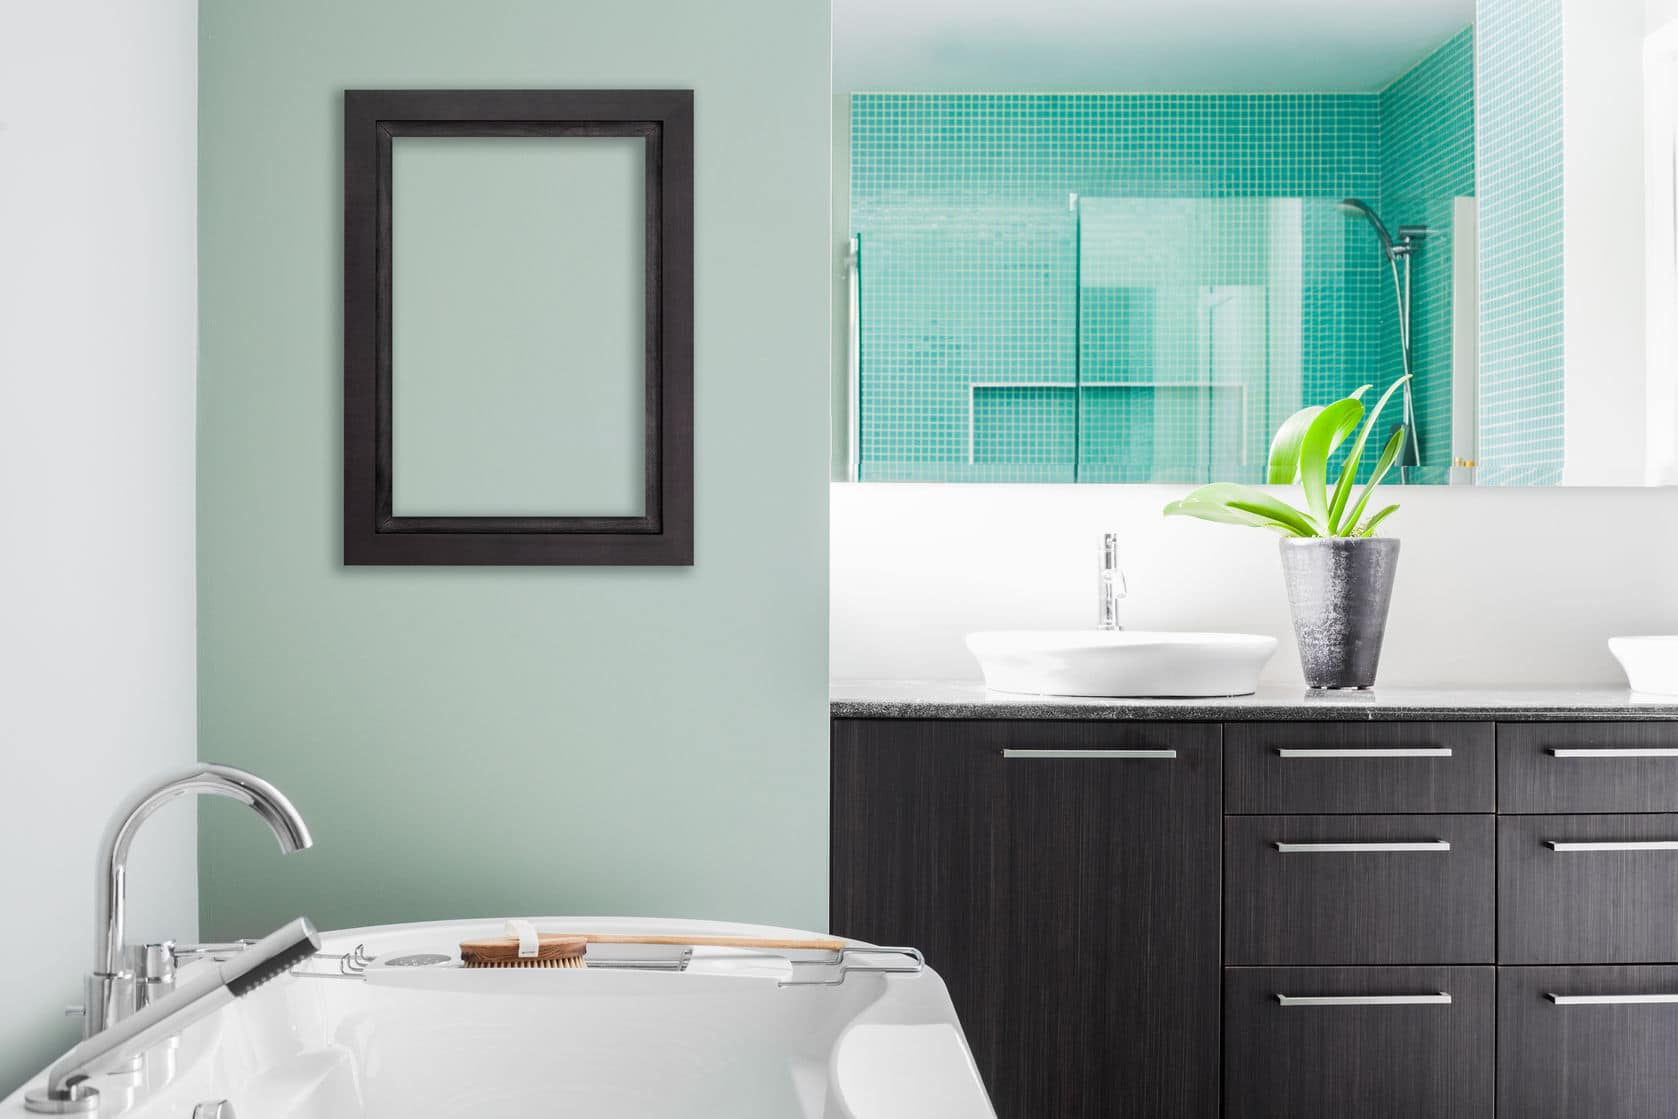 A clean and sleek bathroom is sophisticated and elegant.